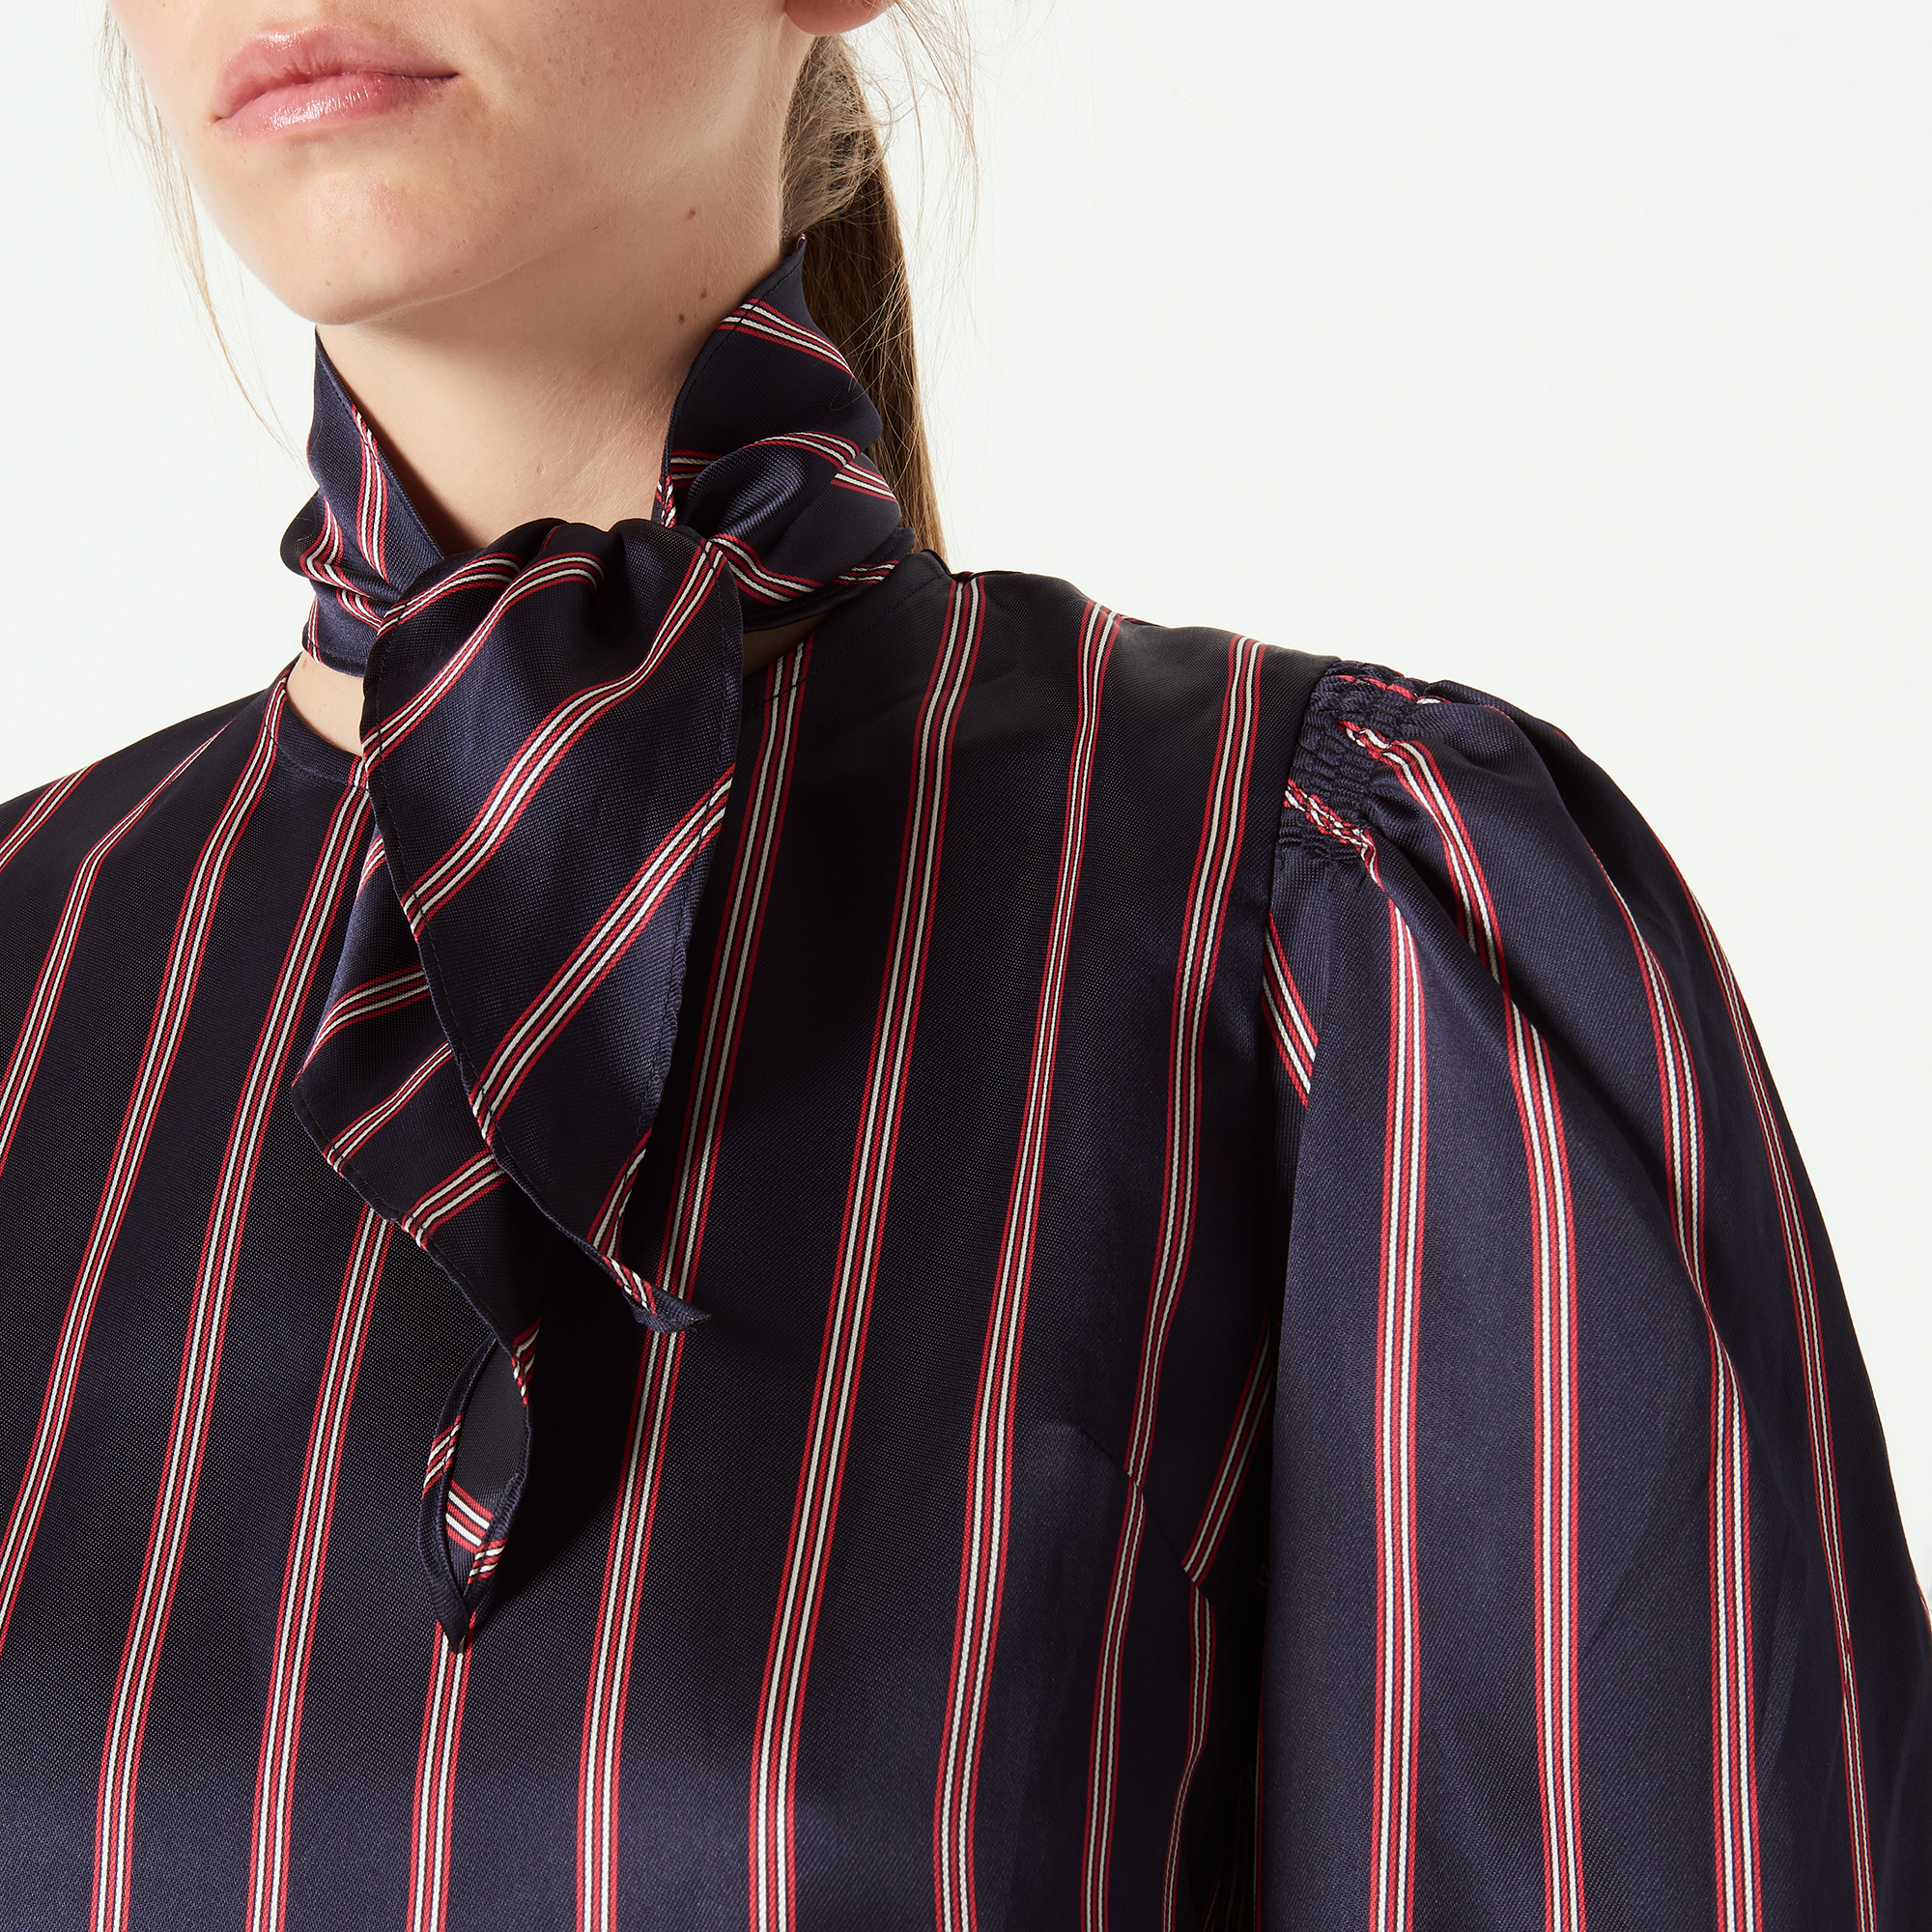 Striped Shirt With Bow At The Neck - Dark Navy